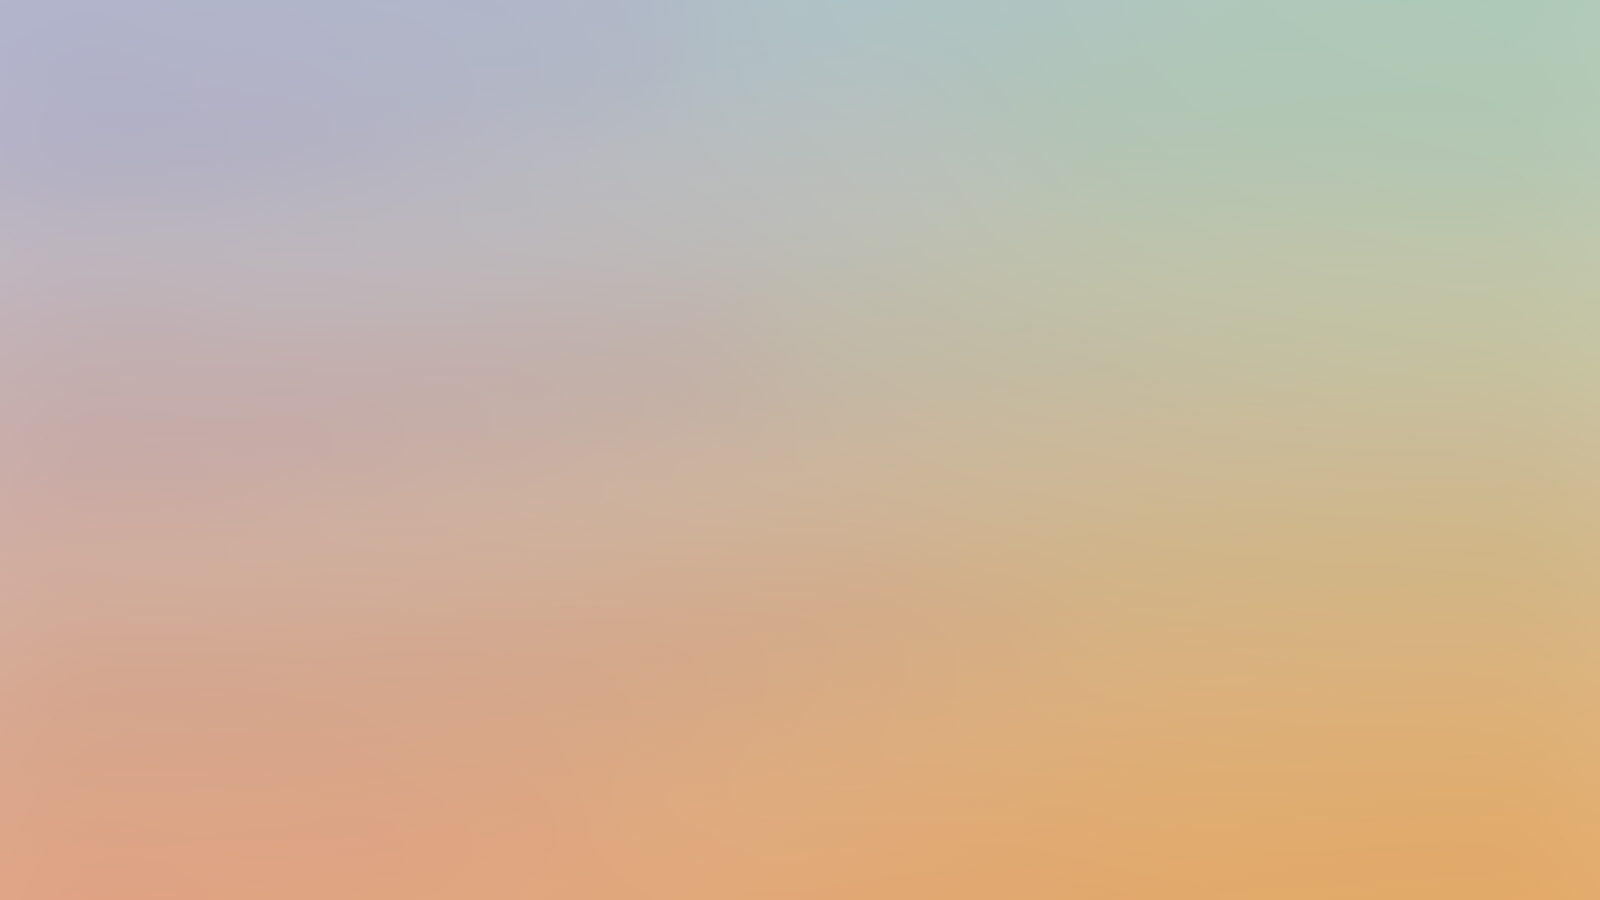 Apple Iphone 8 Wallpaper Download Wallpaper For Desktop Laptop Sm51 Orange Pastel Blur